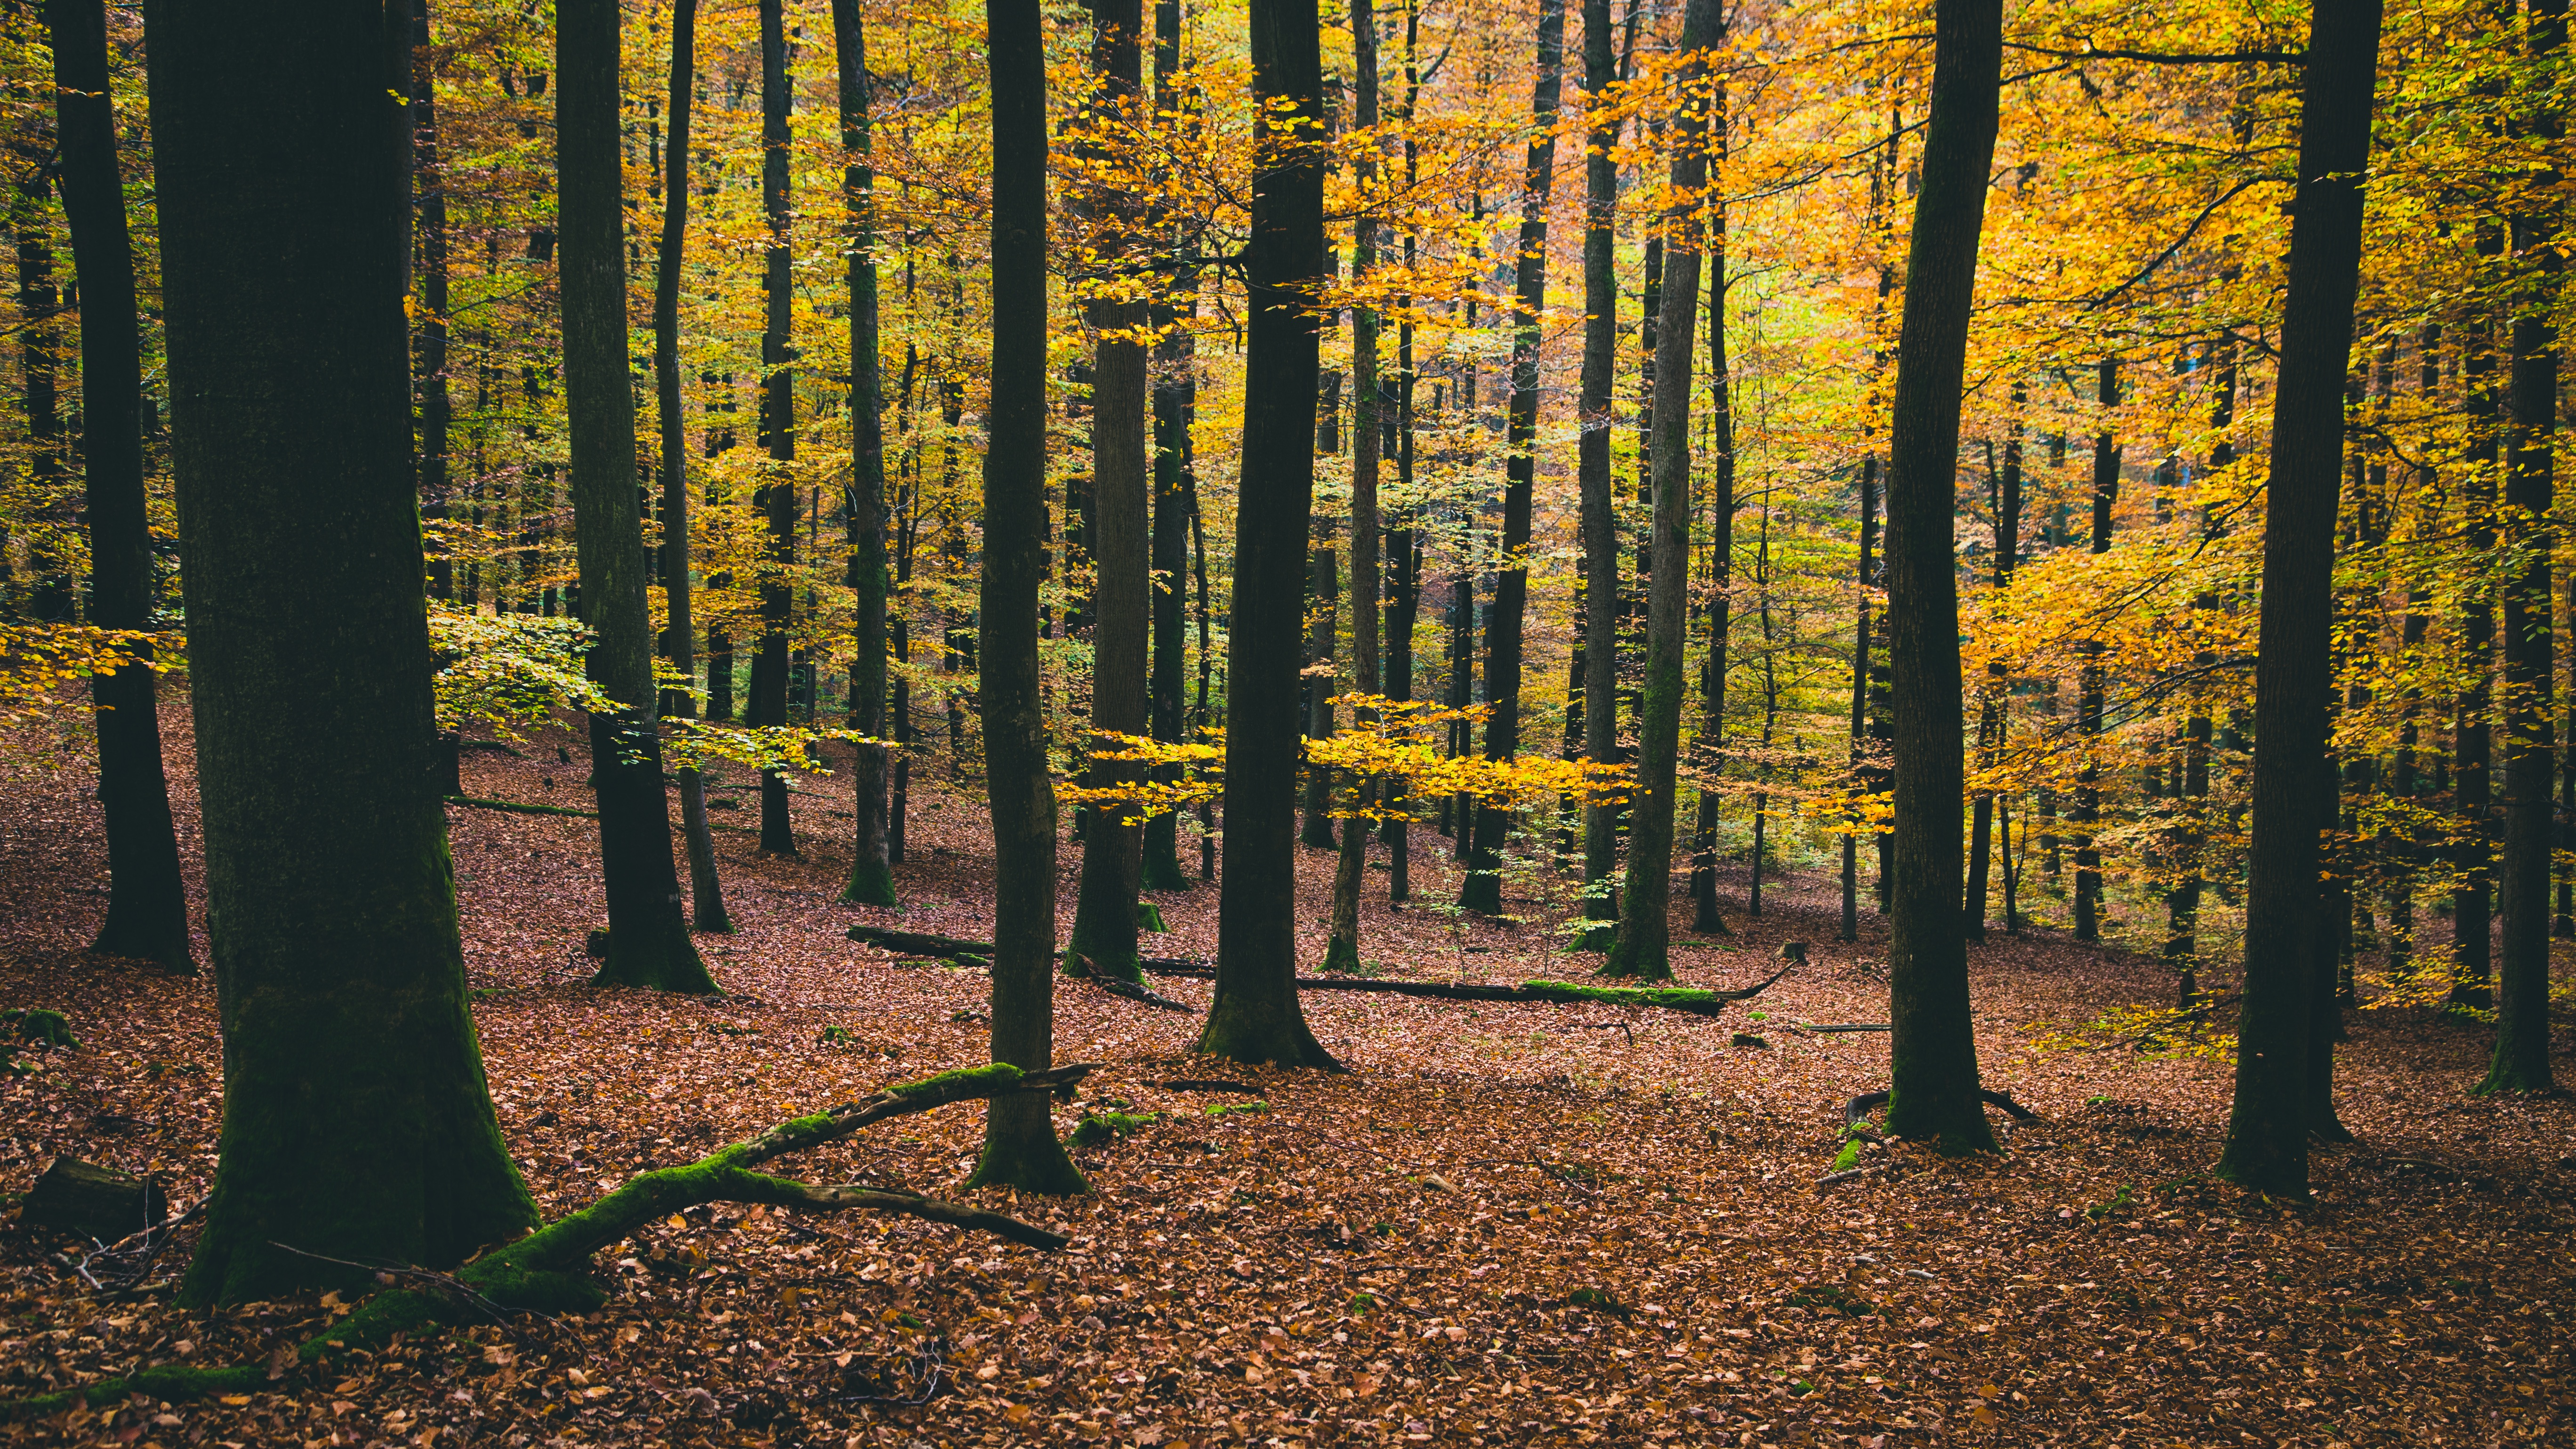 Forest, autumn, leaves, trees, leaves, forest, hill, cold, early autumn forest in autumn